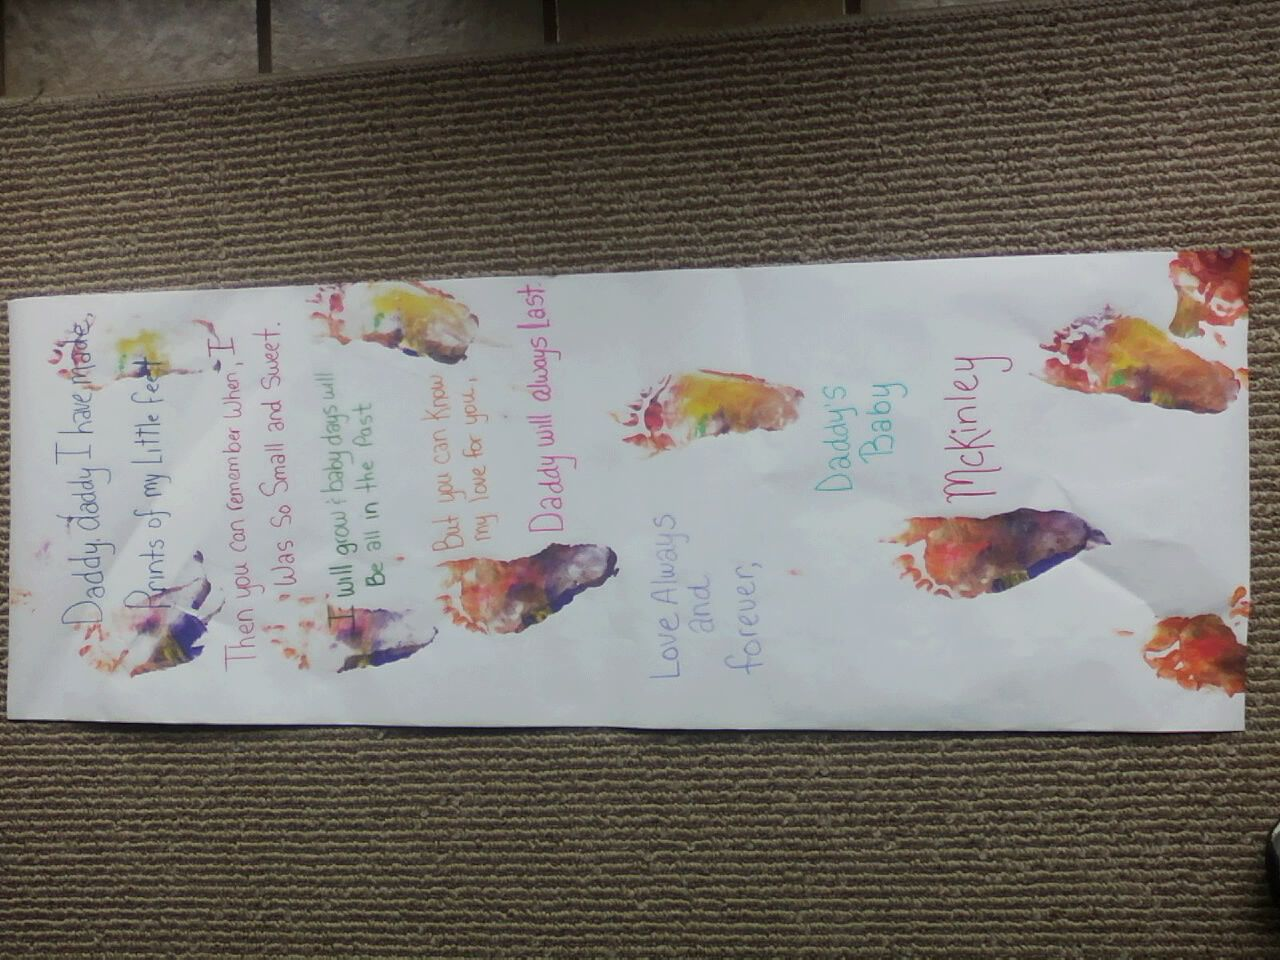 Painted foot prints with poem